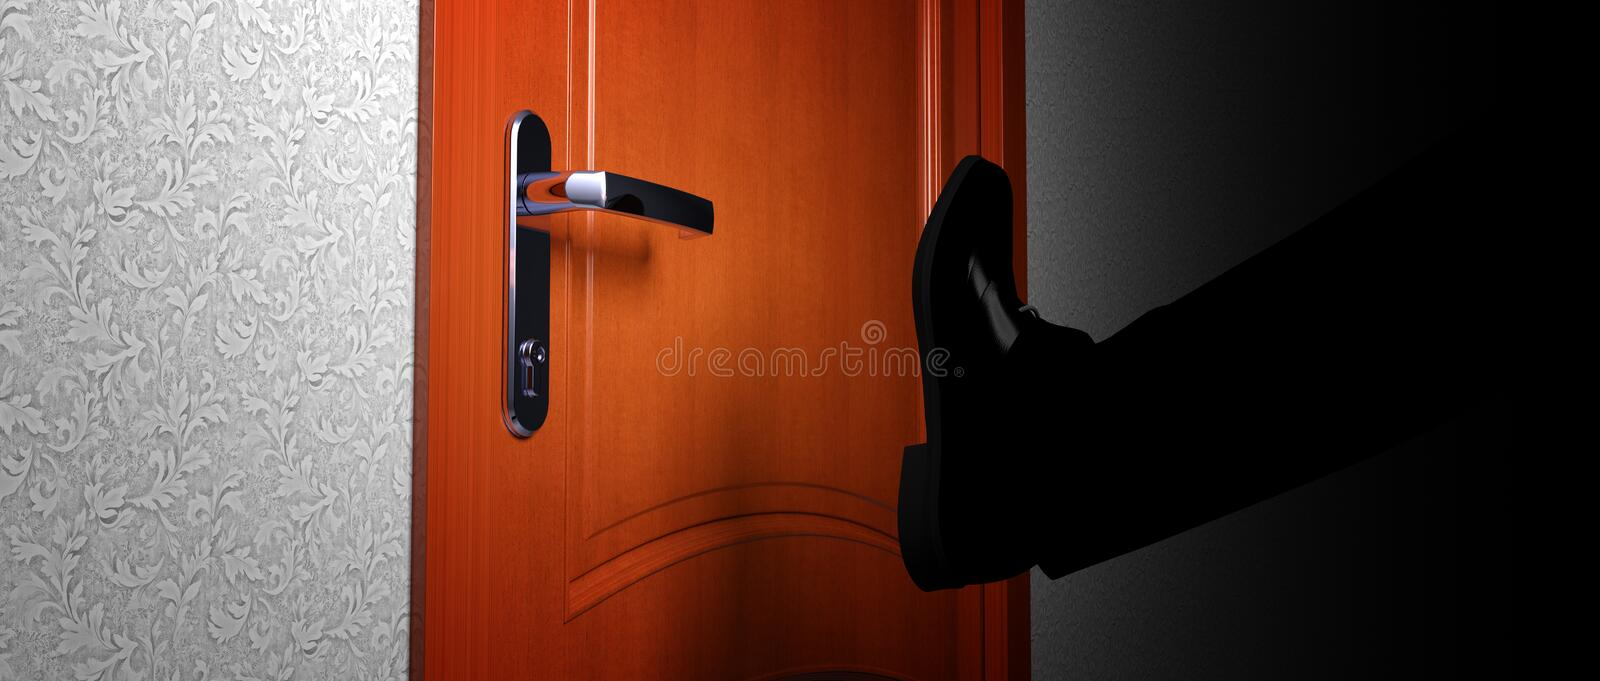 Breaking down door break and enter royalty free illustration